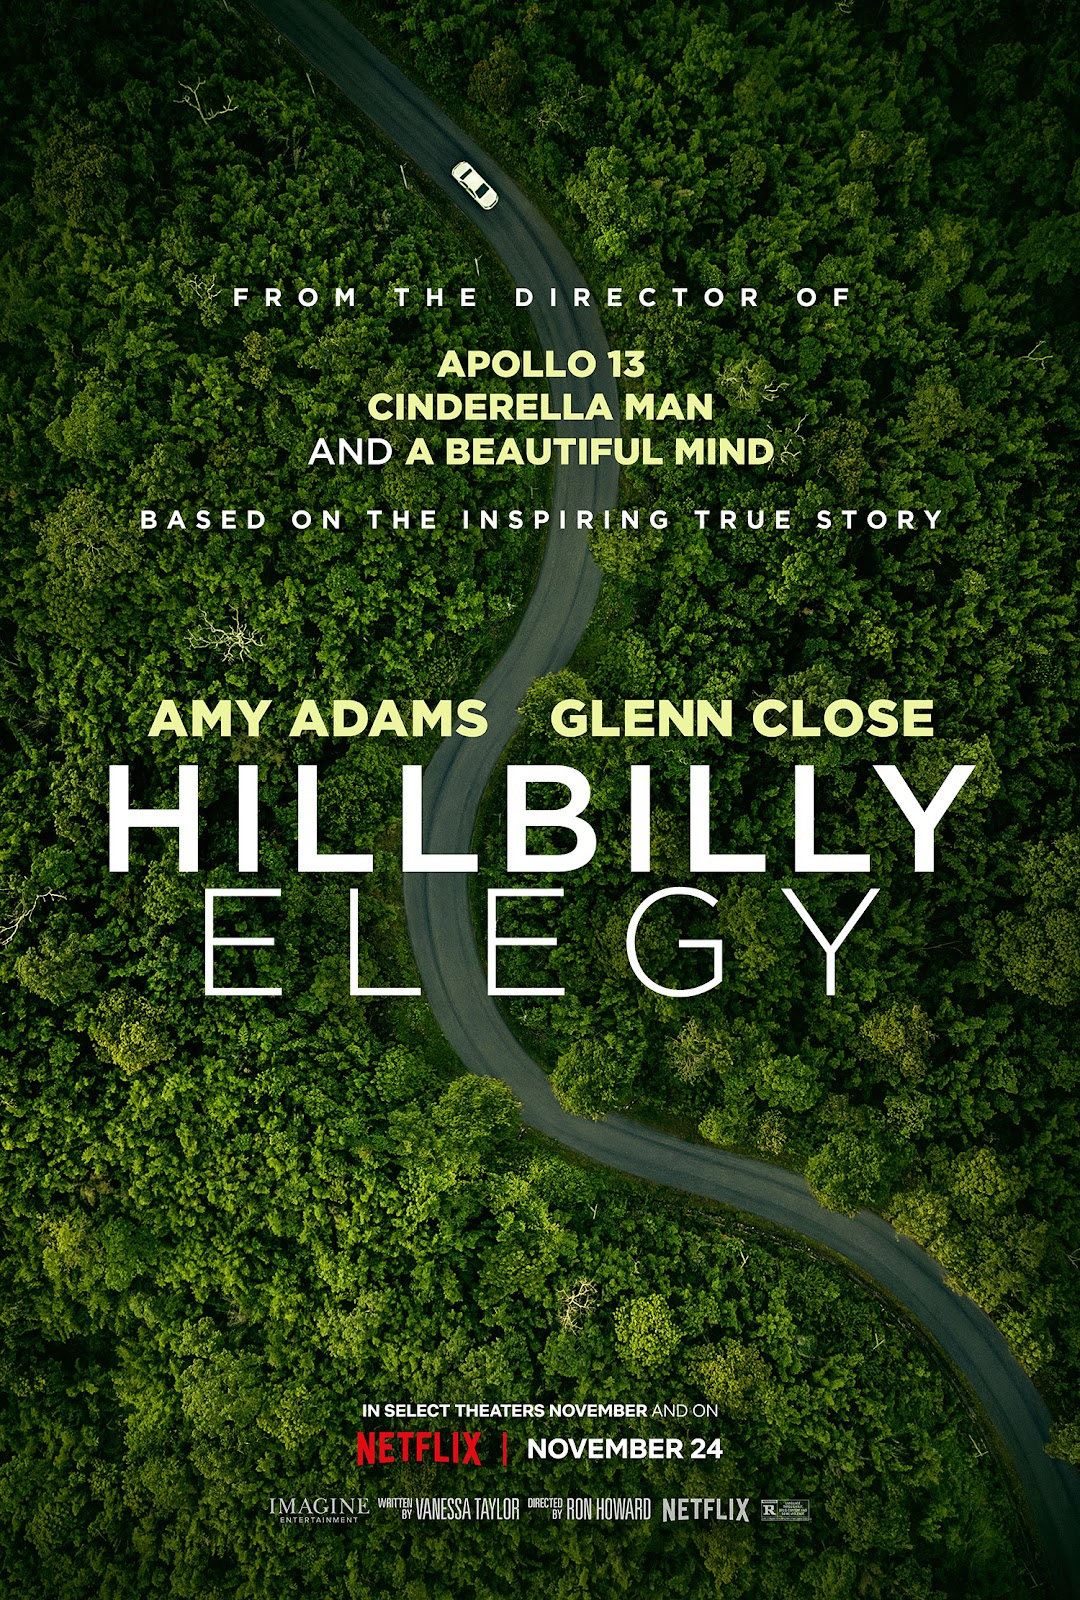 New Netflix Premier Hillbilly Elegy Tech G